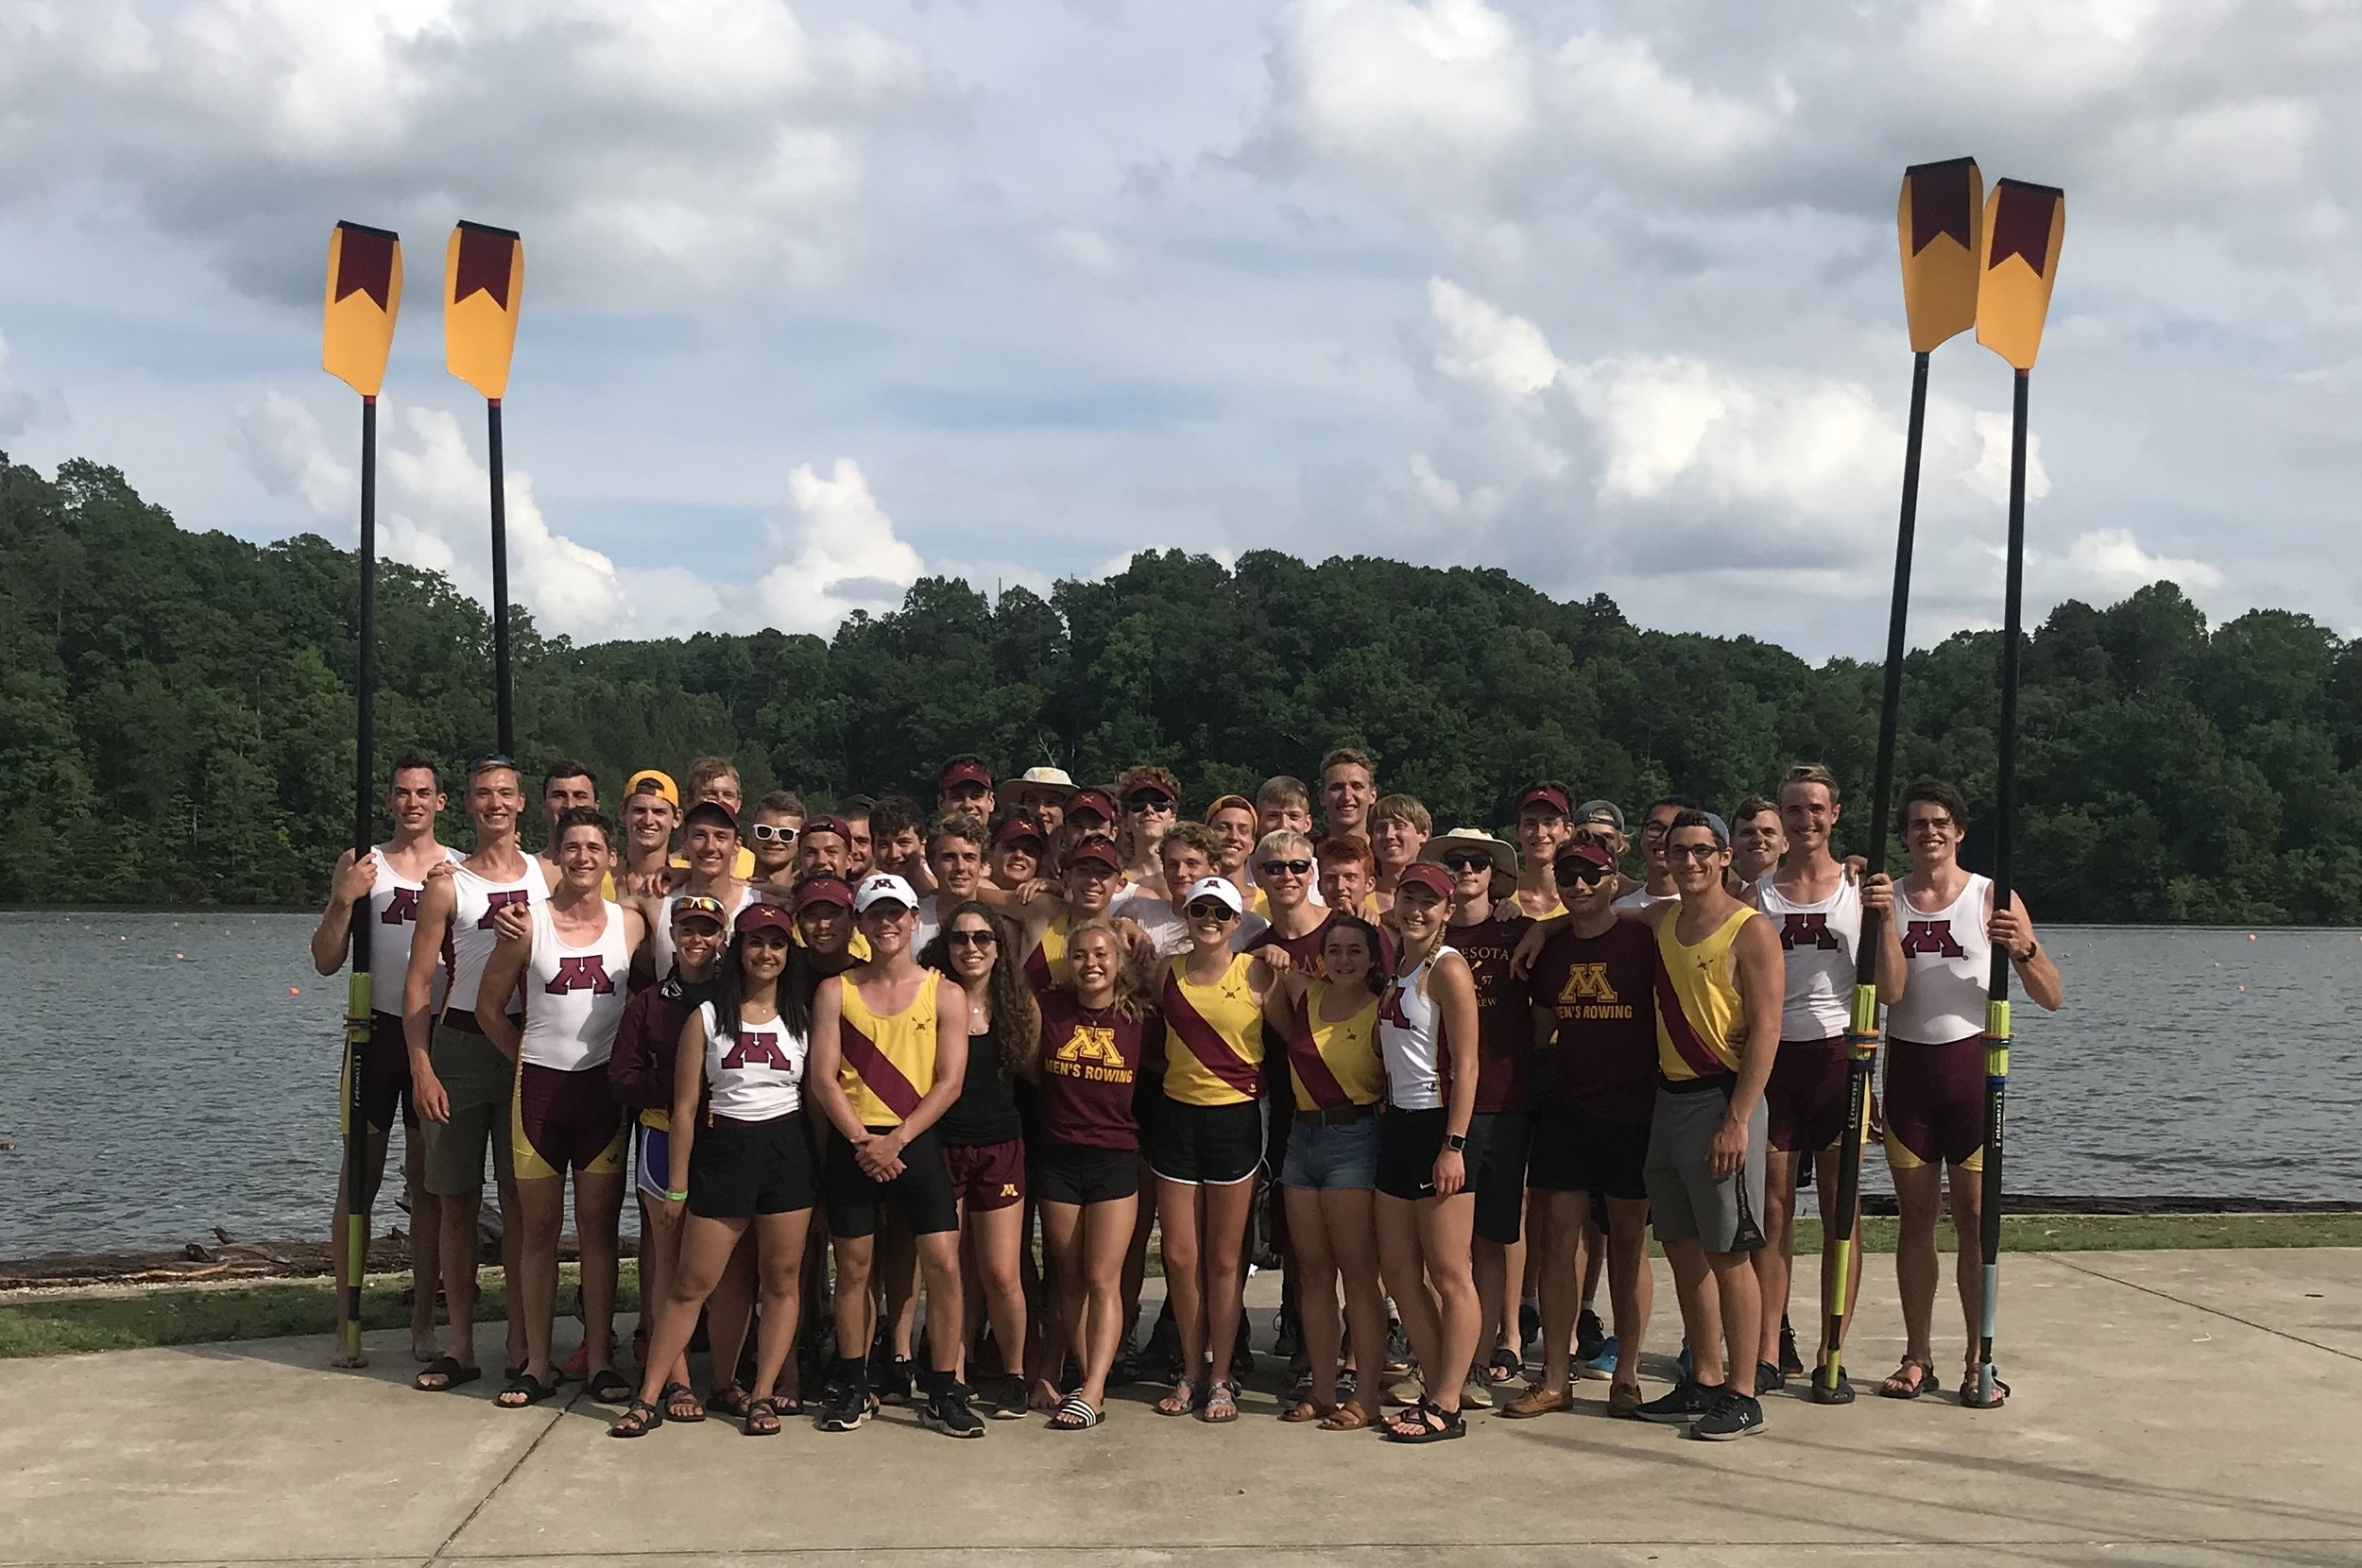 The team takes the annual roster photo in front of the grand stands at ACRA national championship